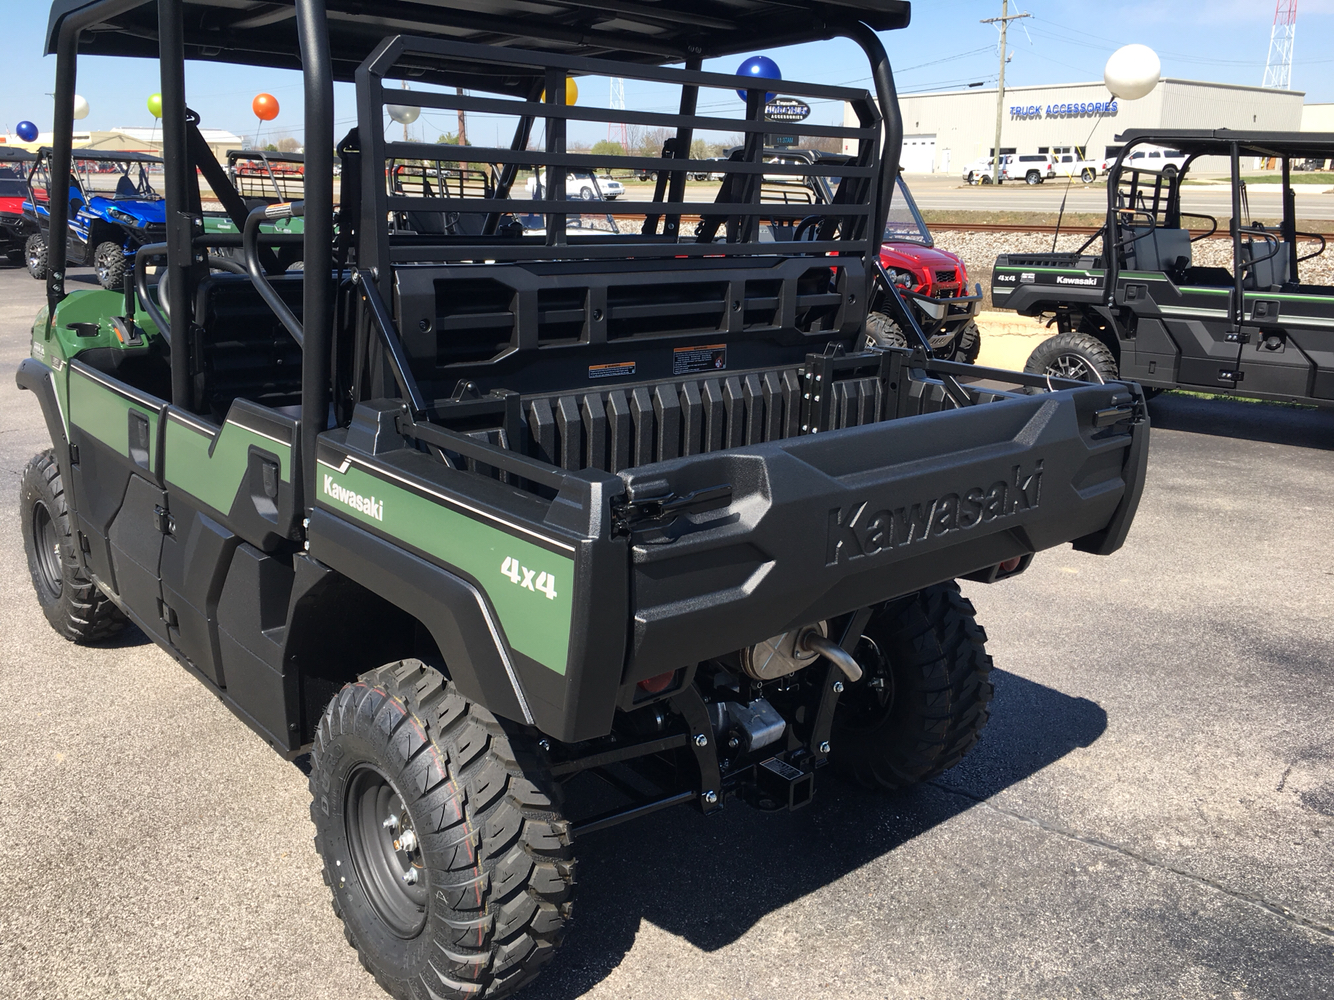 2019 Kawasaki Mule PRO-FXT EPS in Evansville, Indiana - Photo 4